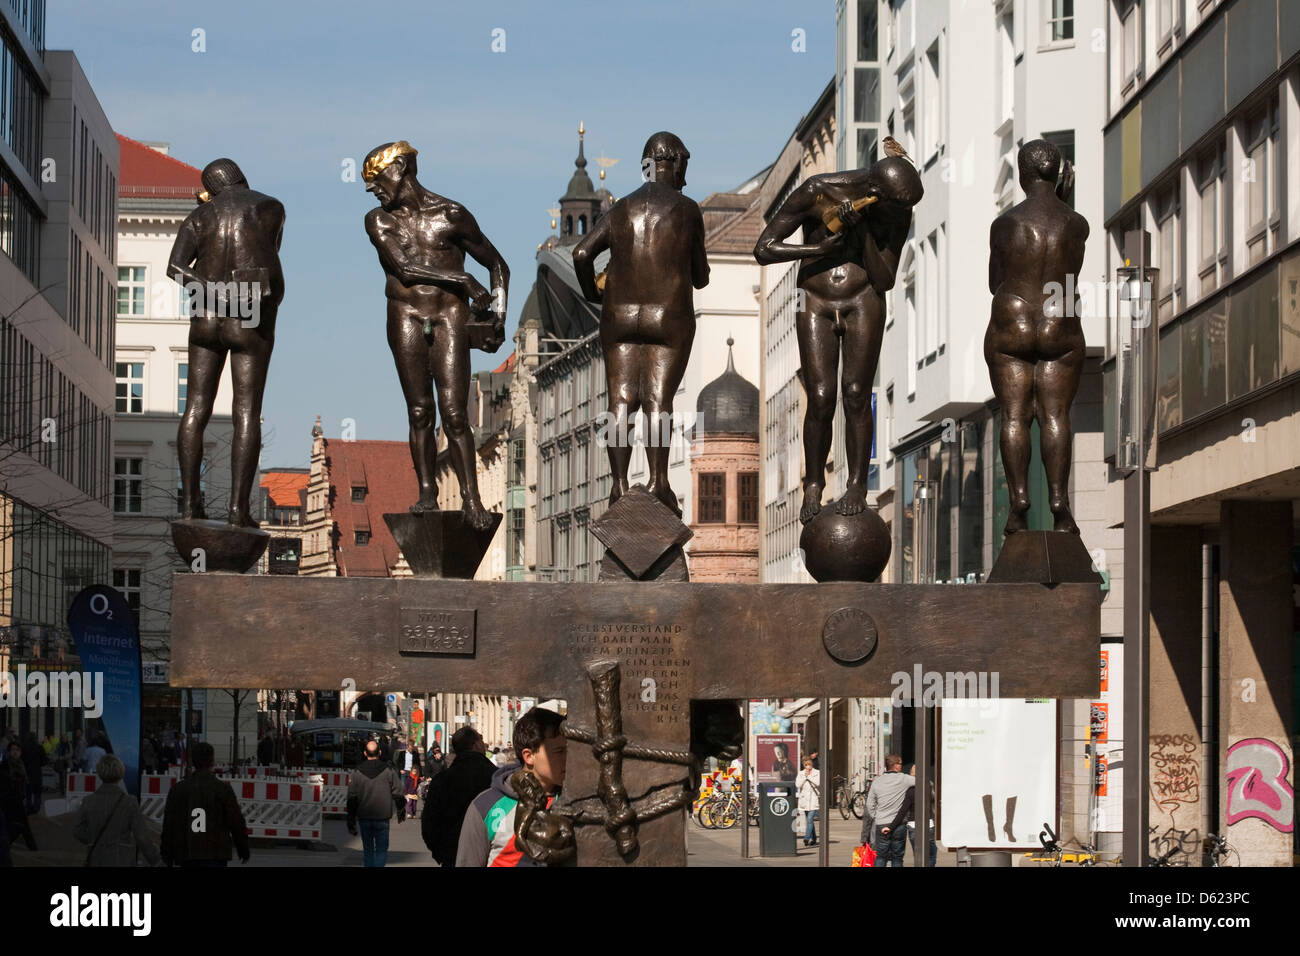 Controversial sculpture of Untimely Contemporaries on popular Grimmaische pedestrian shopping street Leipzig, Germany. - Stock Image